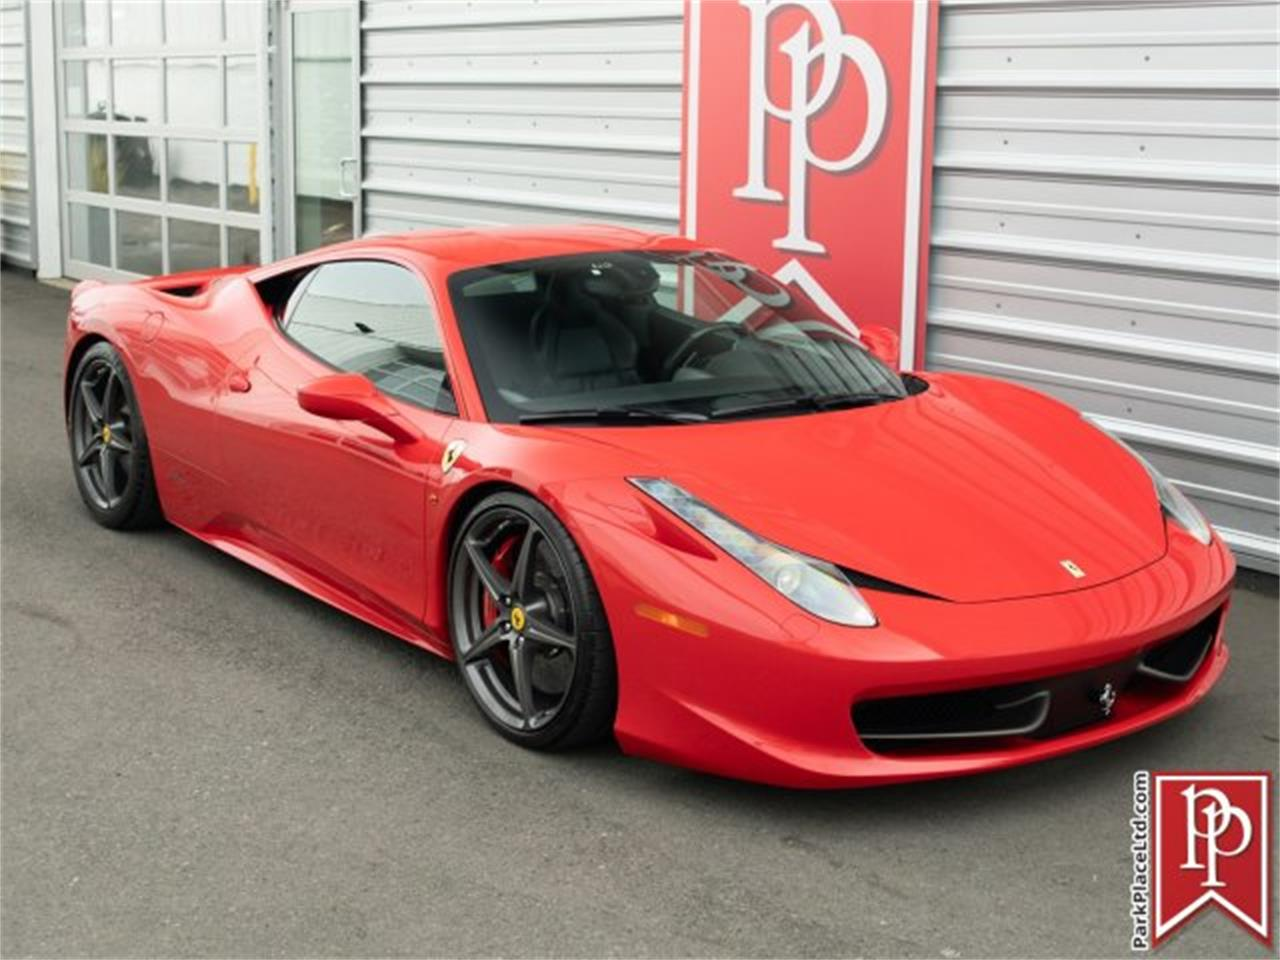 Large Picture of '15 Ferrari 458 located in Bellevue Washington Offered by Park Place Ltd - PO5X